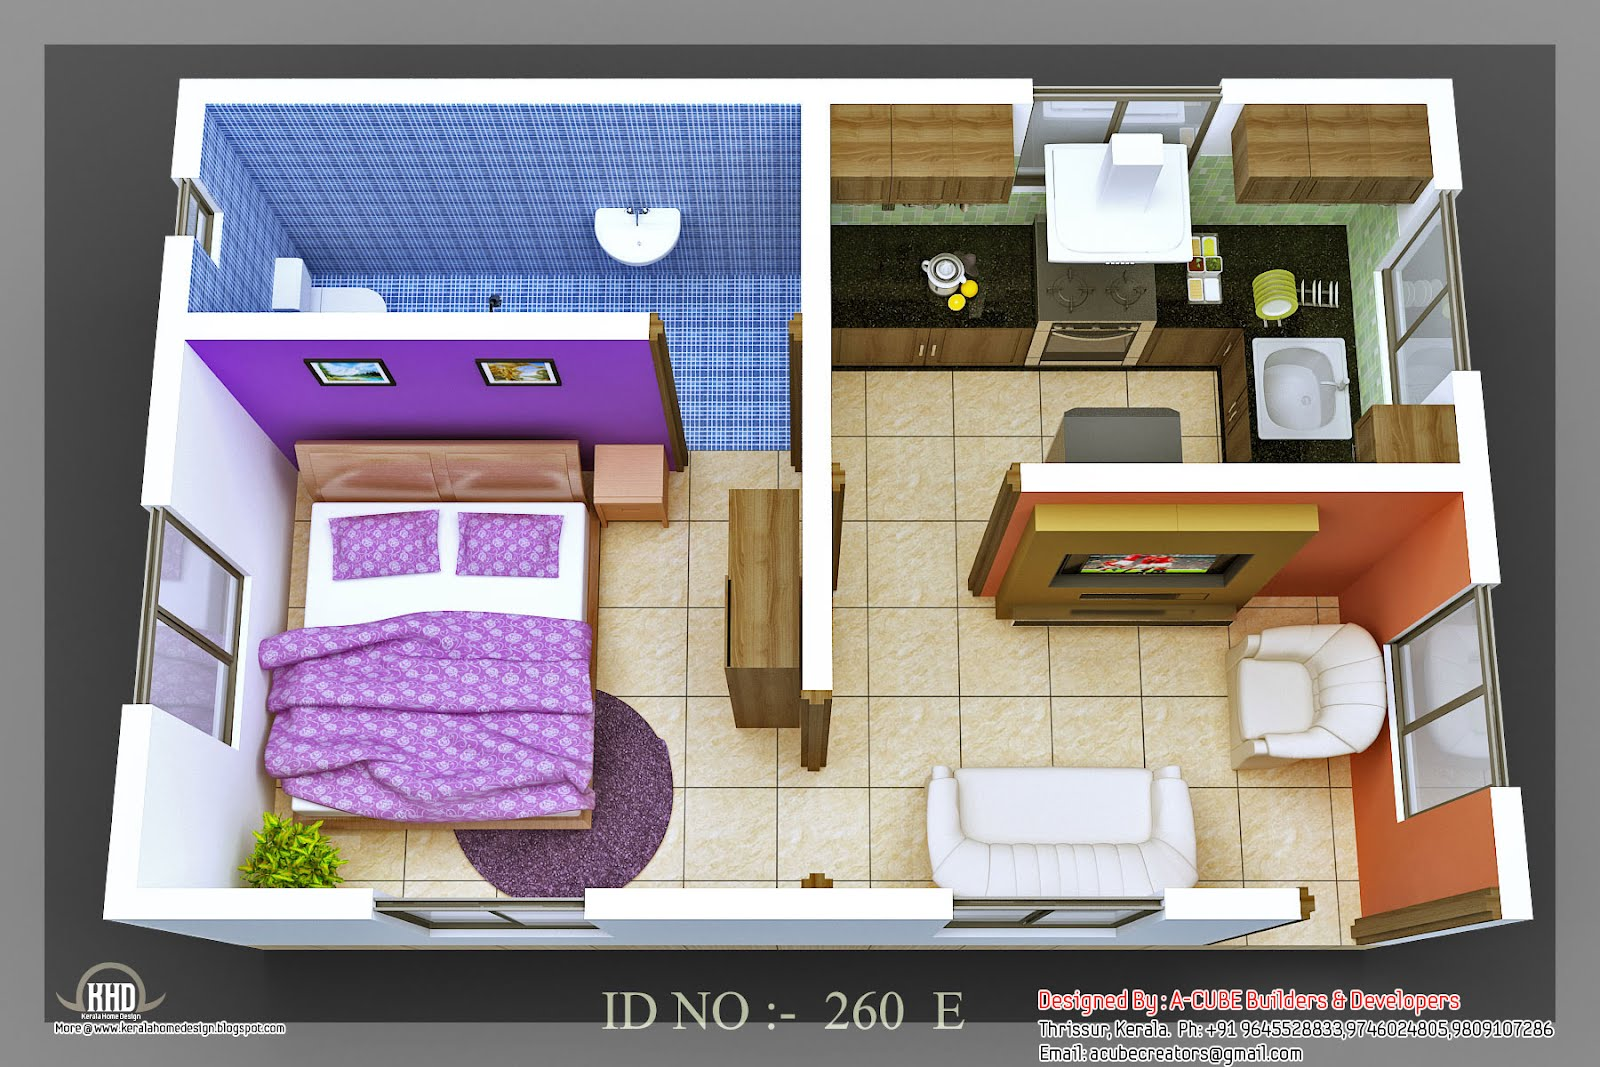 3d Isometric Views Of Small House Plans Kerala Home Design And Floor Plans